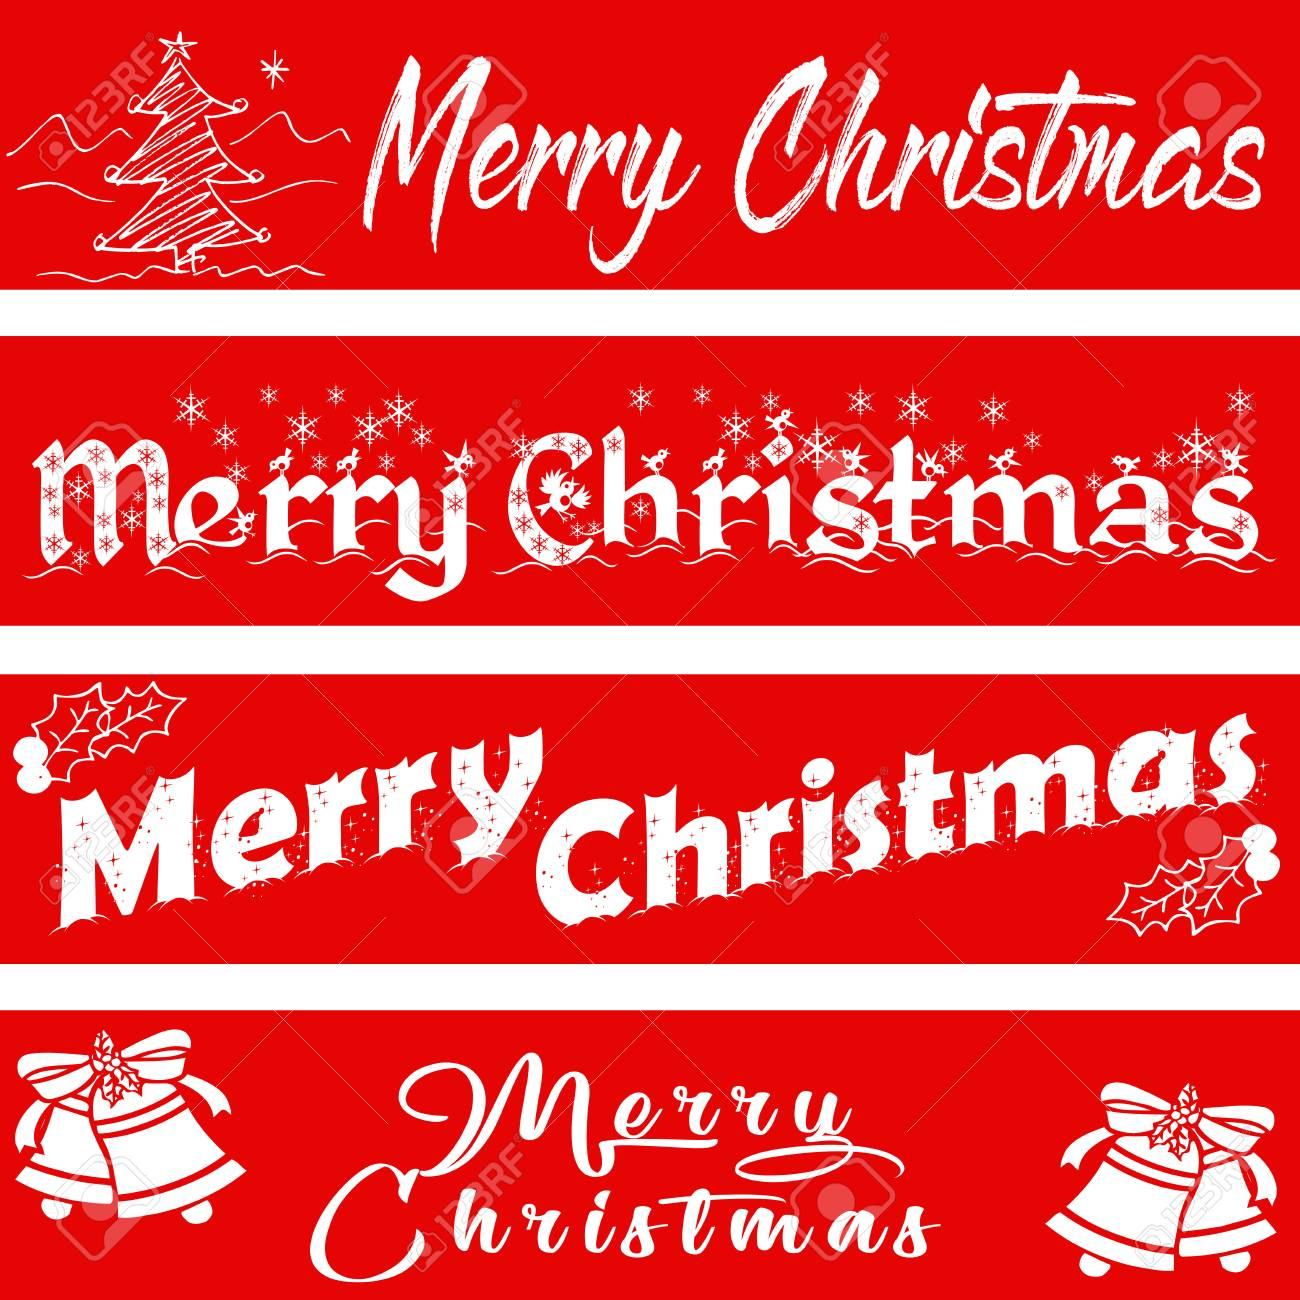 Merry christmas usable for banners greeting cards gifts etc usable for banners greeting cards gifts etc stock vector m4hsunfo